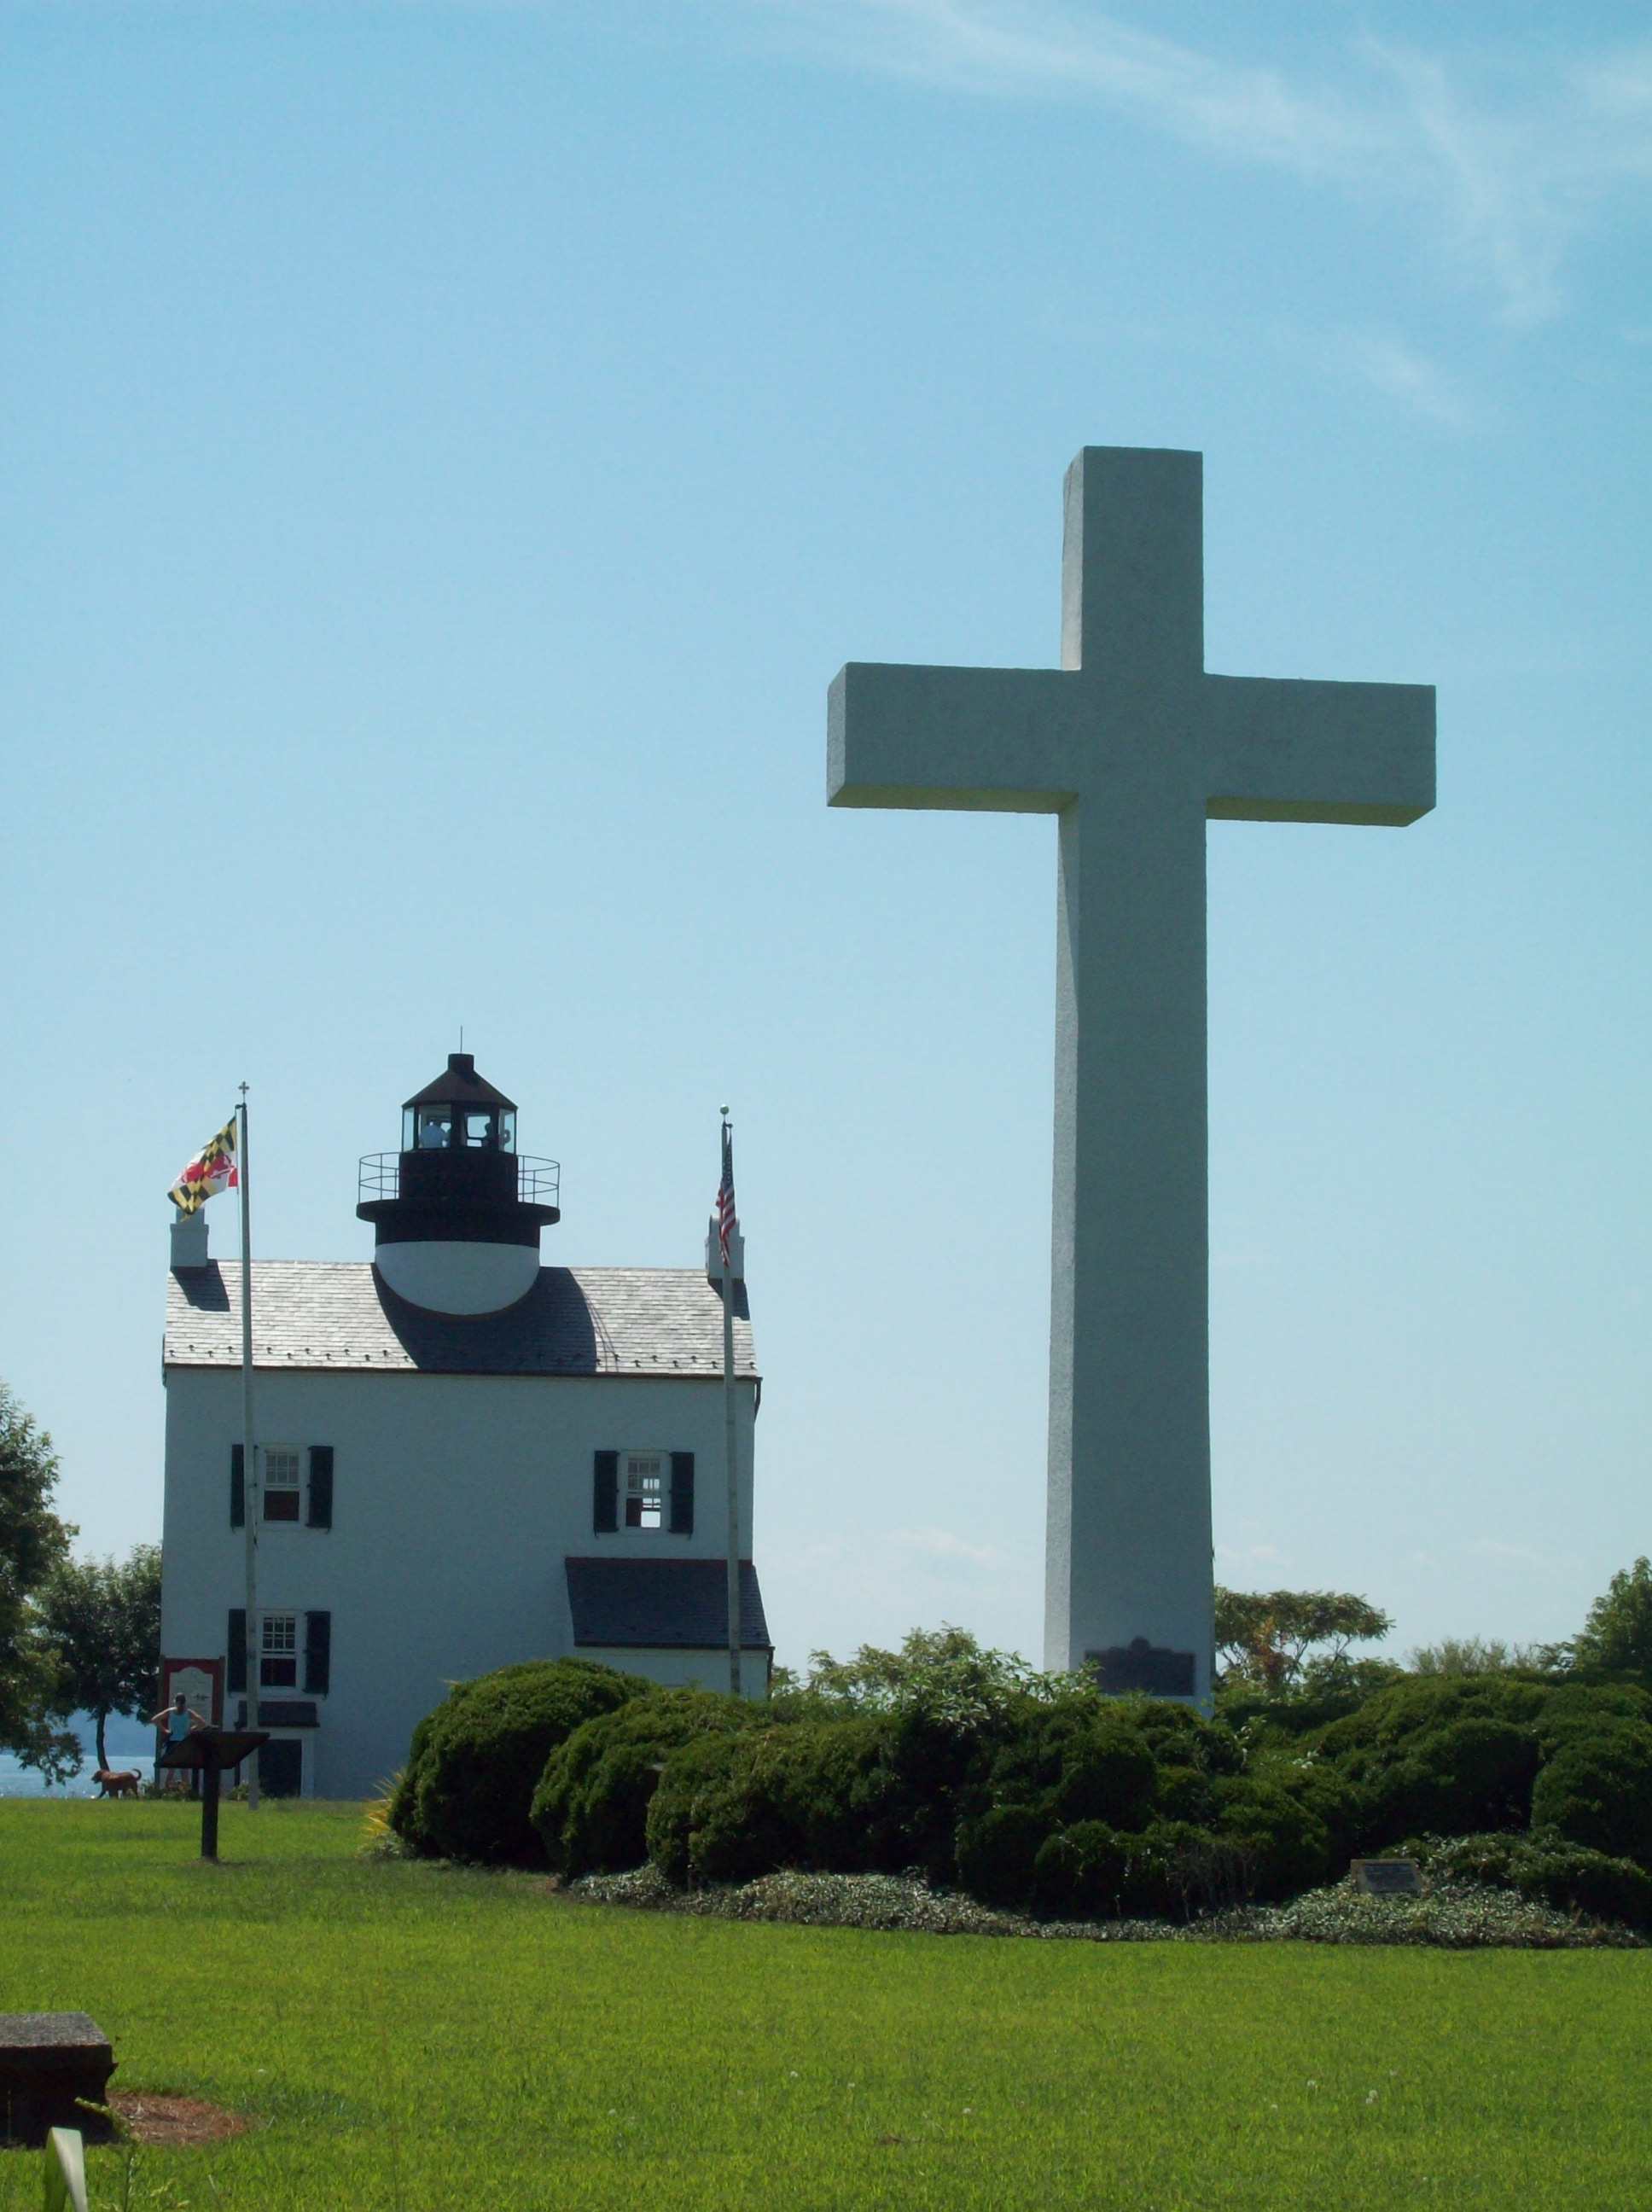 Commemorative cross and rebuilt Blackistone Lighthouse on St. Clement's Island, Maryland. Photo taken on September 5, 2009.